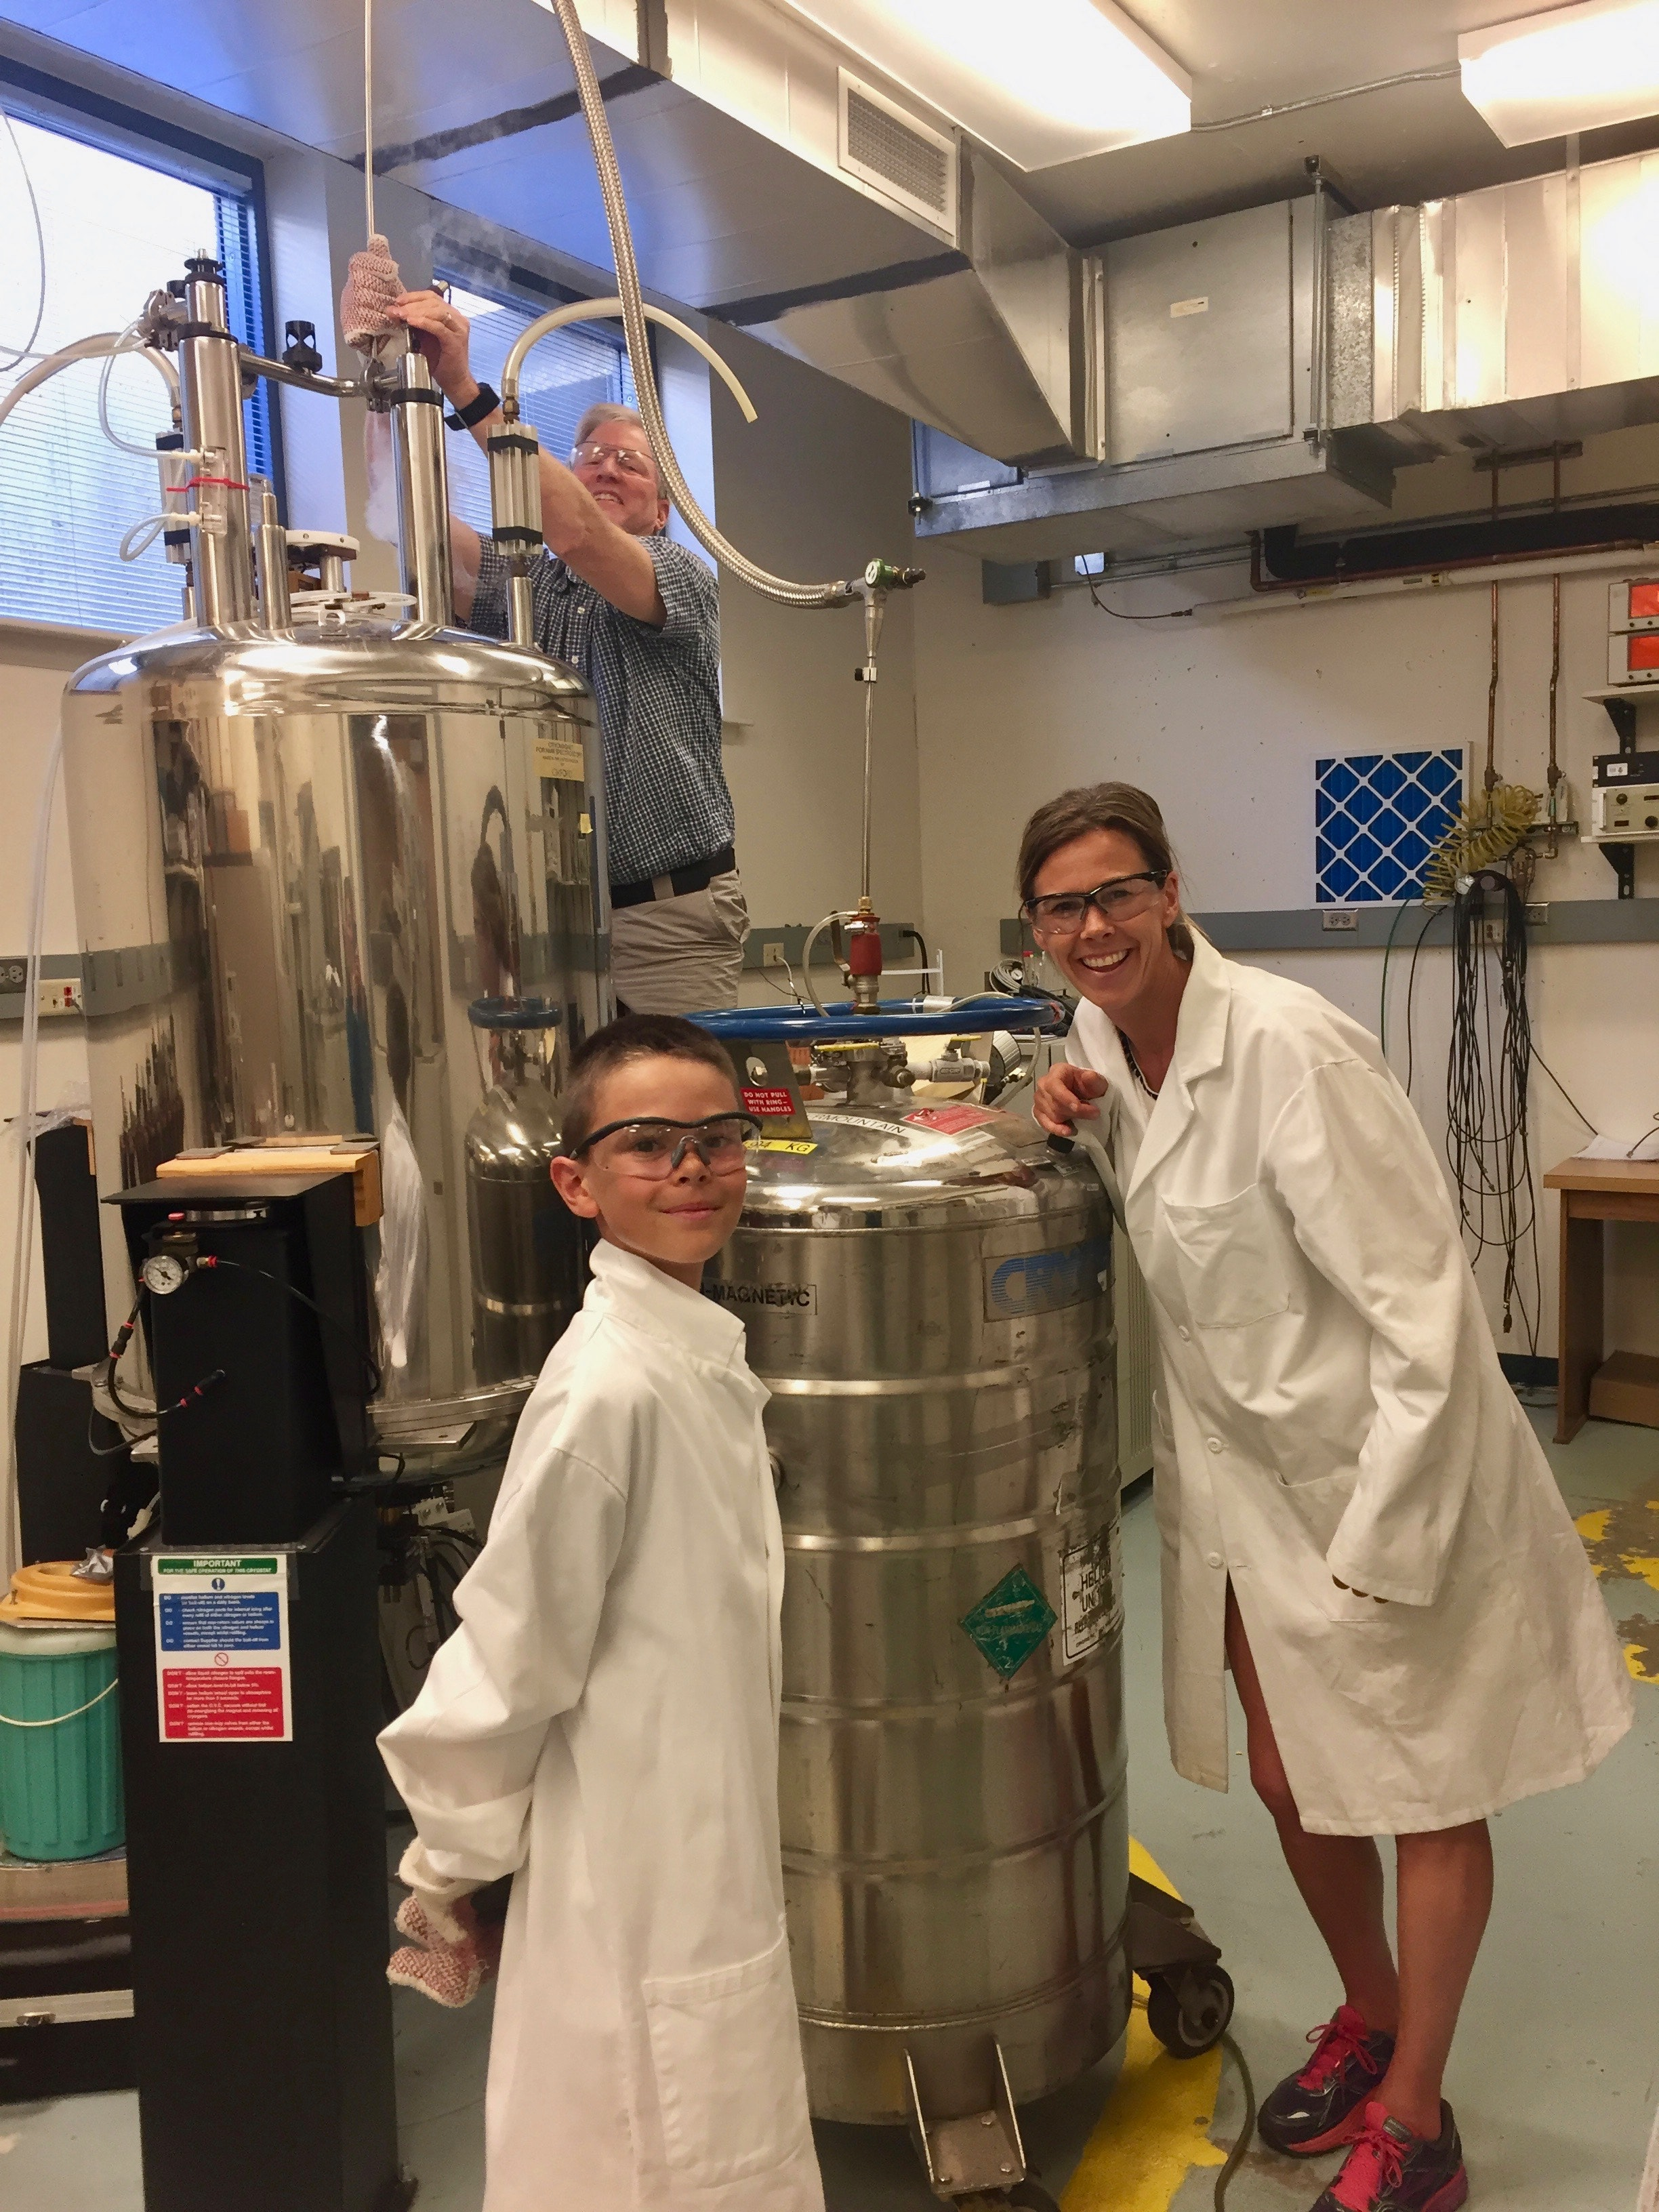 Woman and boy in lab coats next to helium tanks.